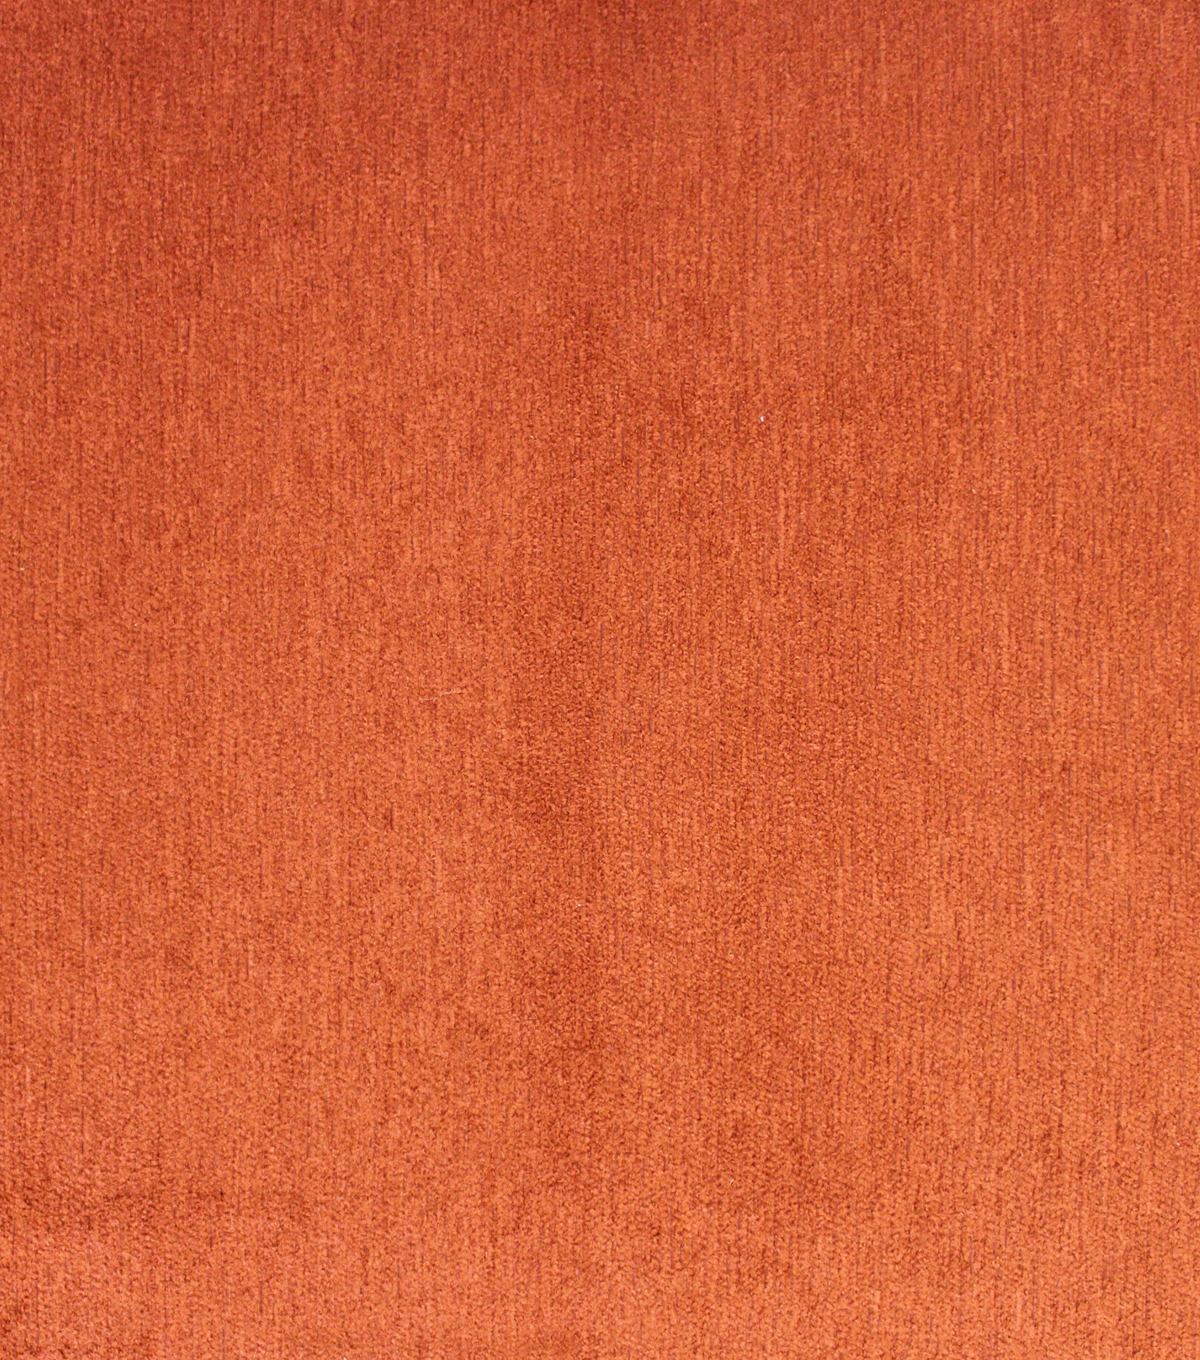 Home Decor 8\u0022x8\u0022 Fabric Swatch-Upholstery  Barrow M8291-5486 Pomegranate